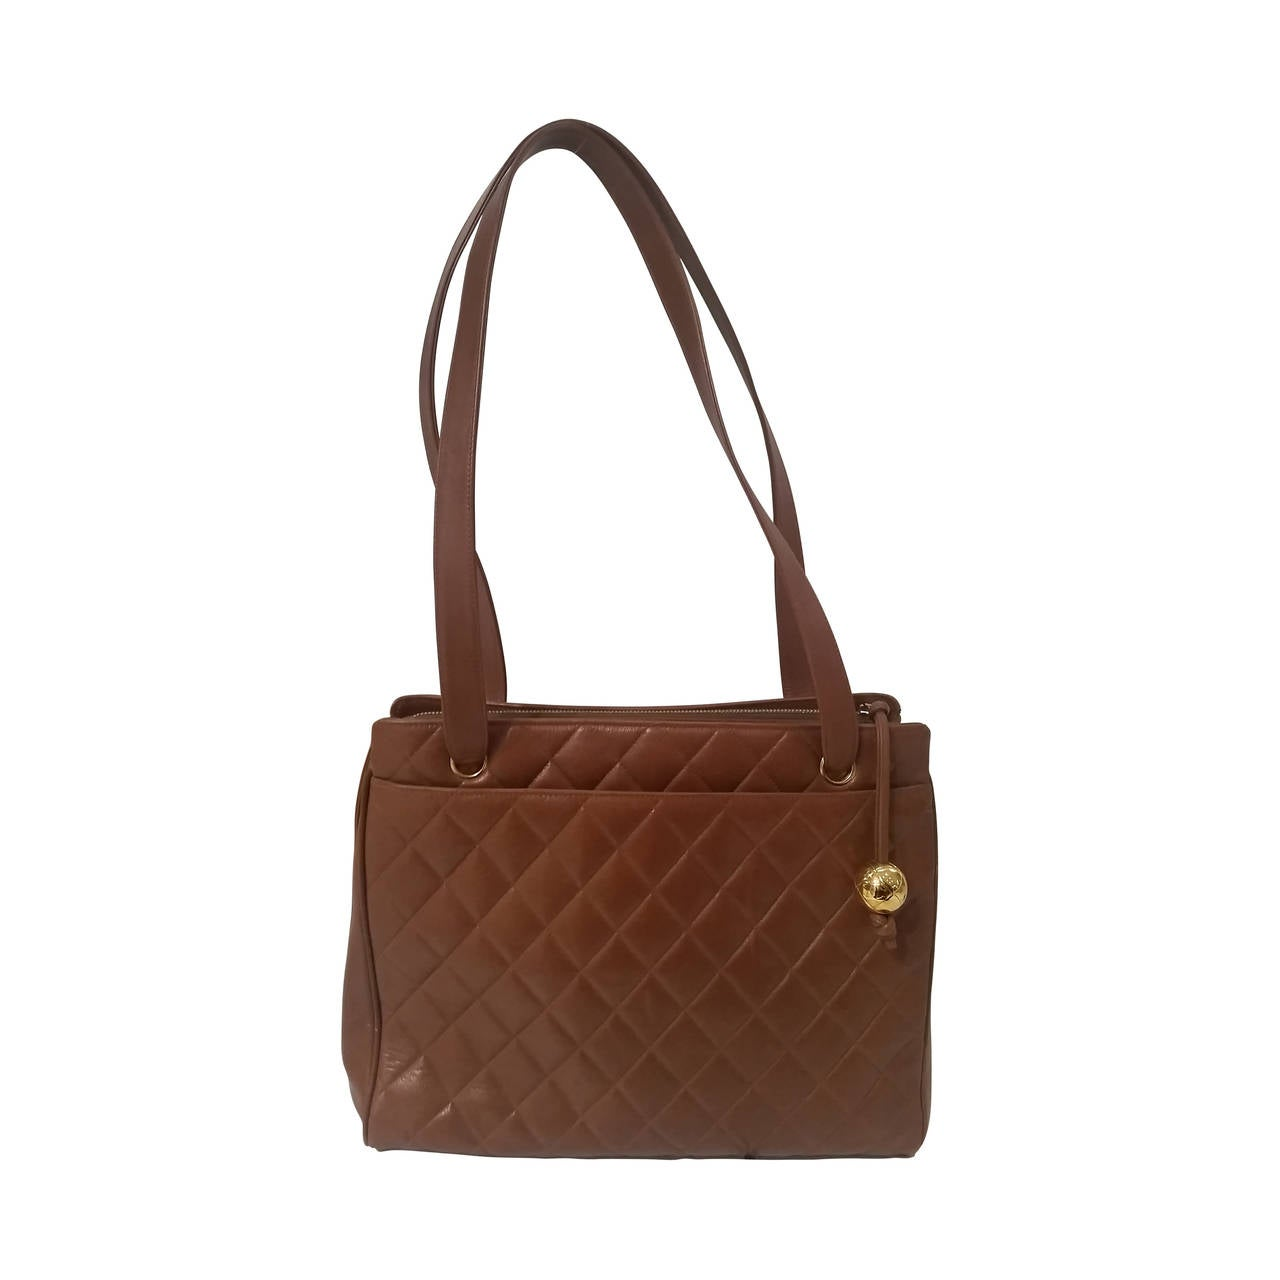 1991s Chanel brown leather bag